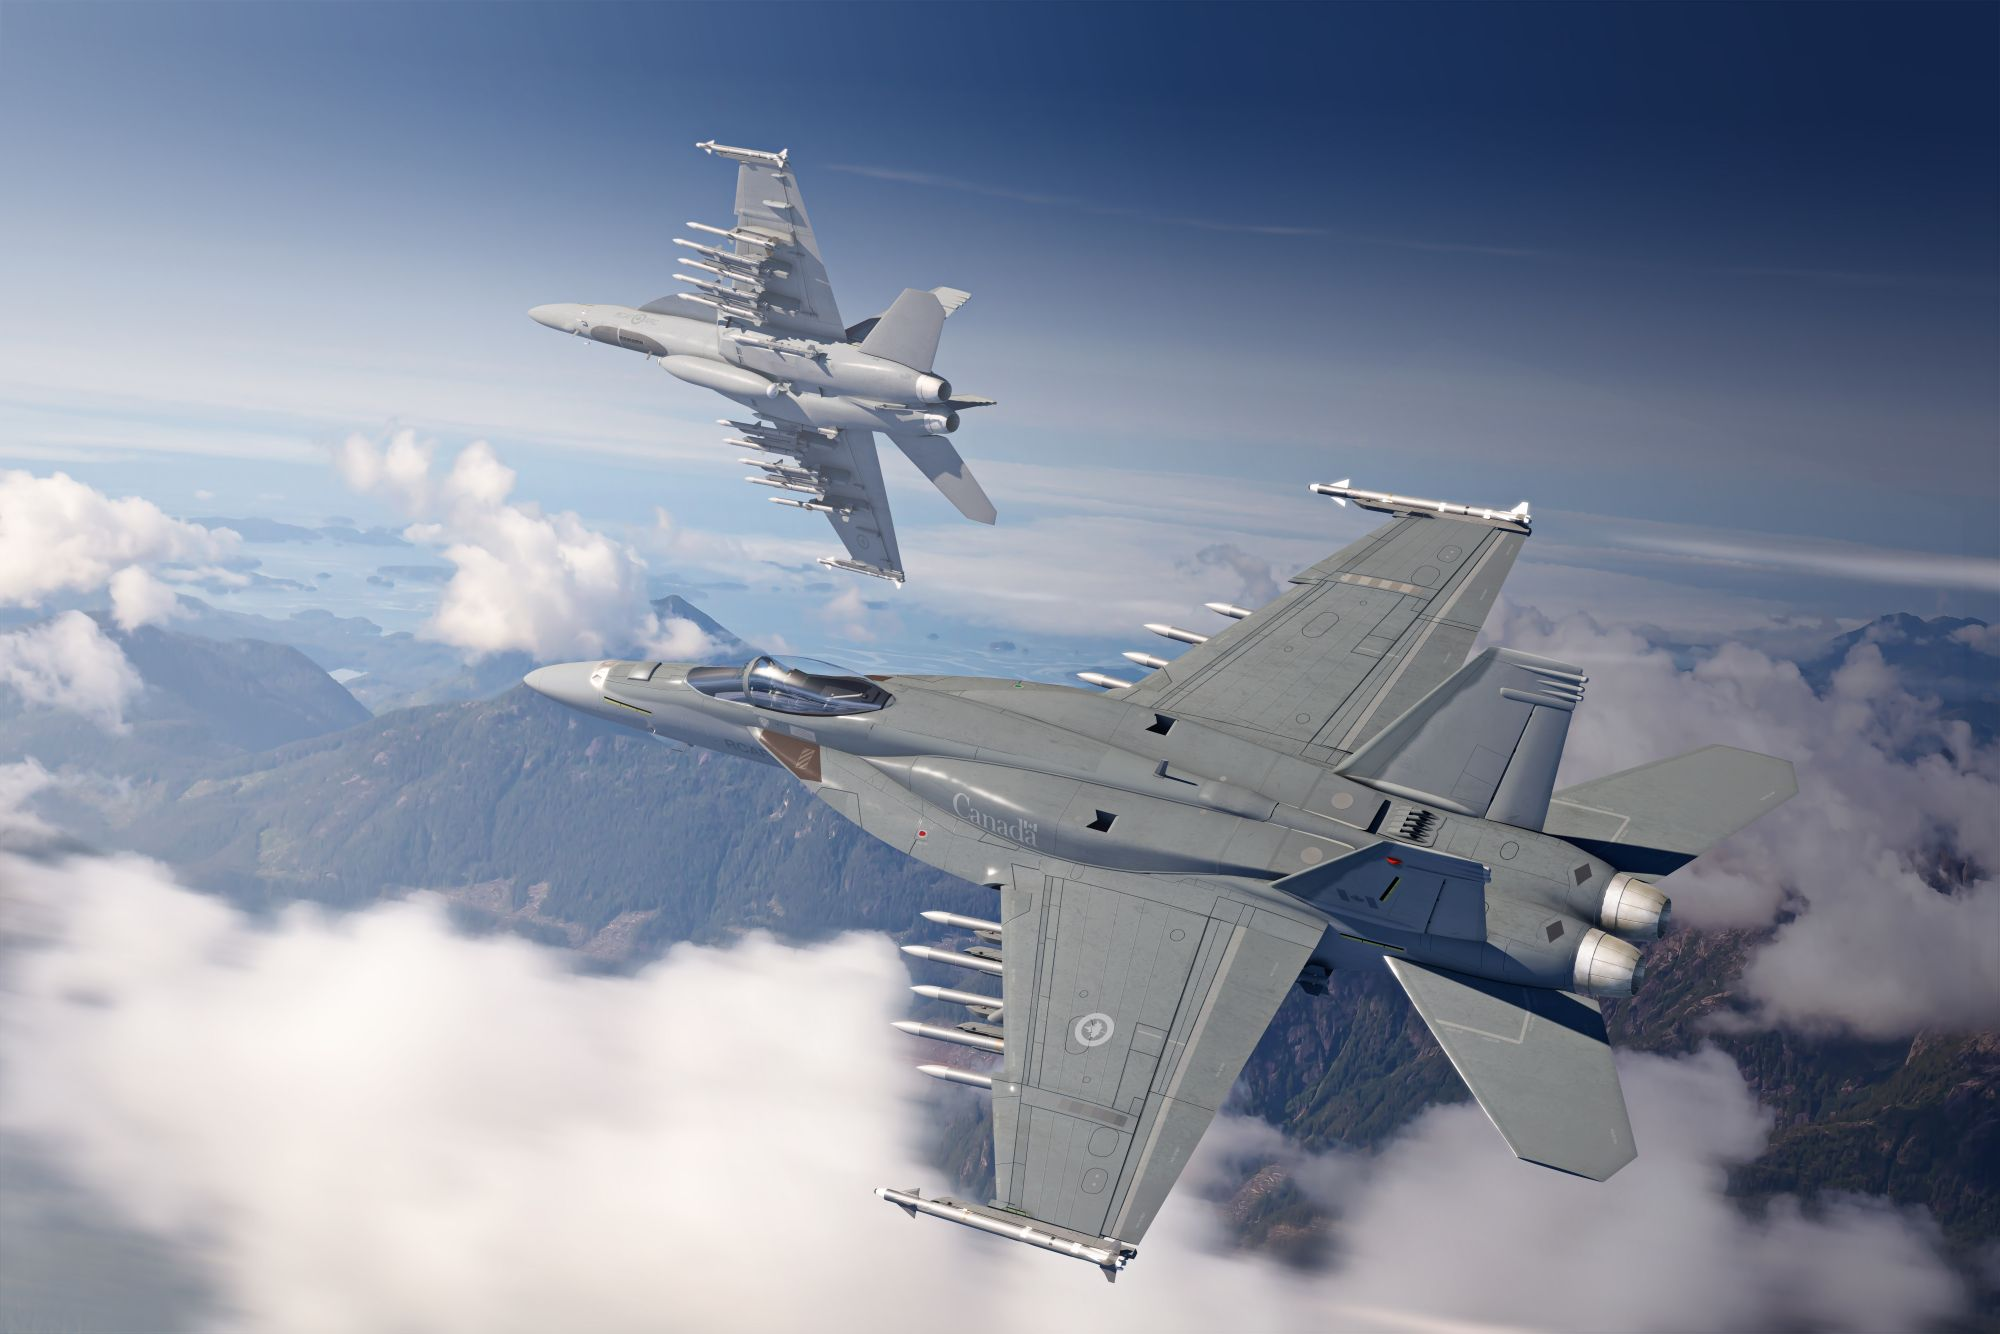 Artist's illustration of Boeing's Block III Super Hornets with Canadian logos. Two experts that spoke with          Janes          said Boeing's proposal to perform Block III Super Hornet final assembly in the US and not Canada if it won Canada's fighter competition was a reasonable business decision.        (Boeing)